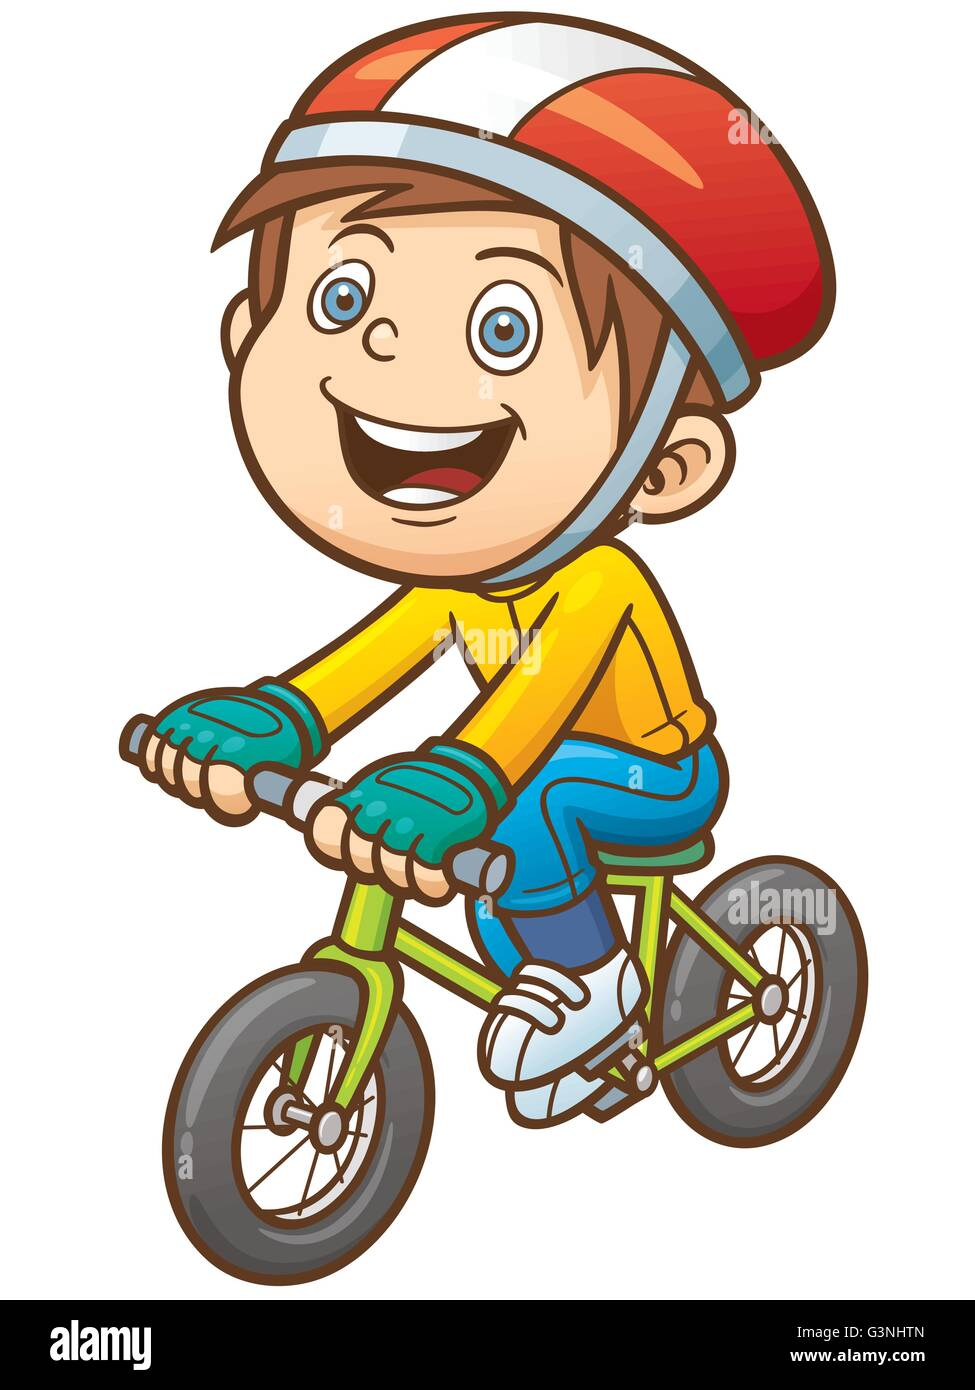 Vector illustration of Cartoon boy on a bicycle - Stock Image